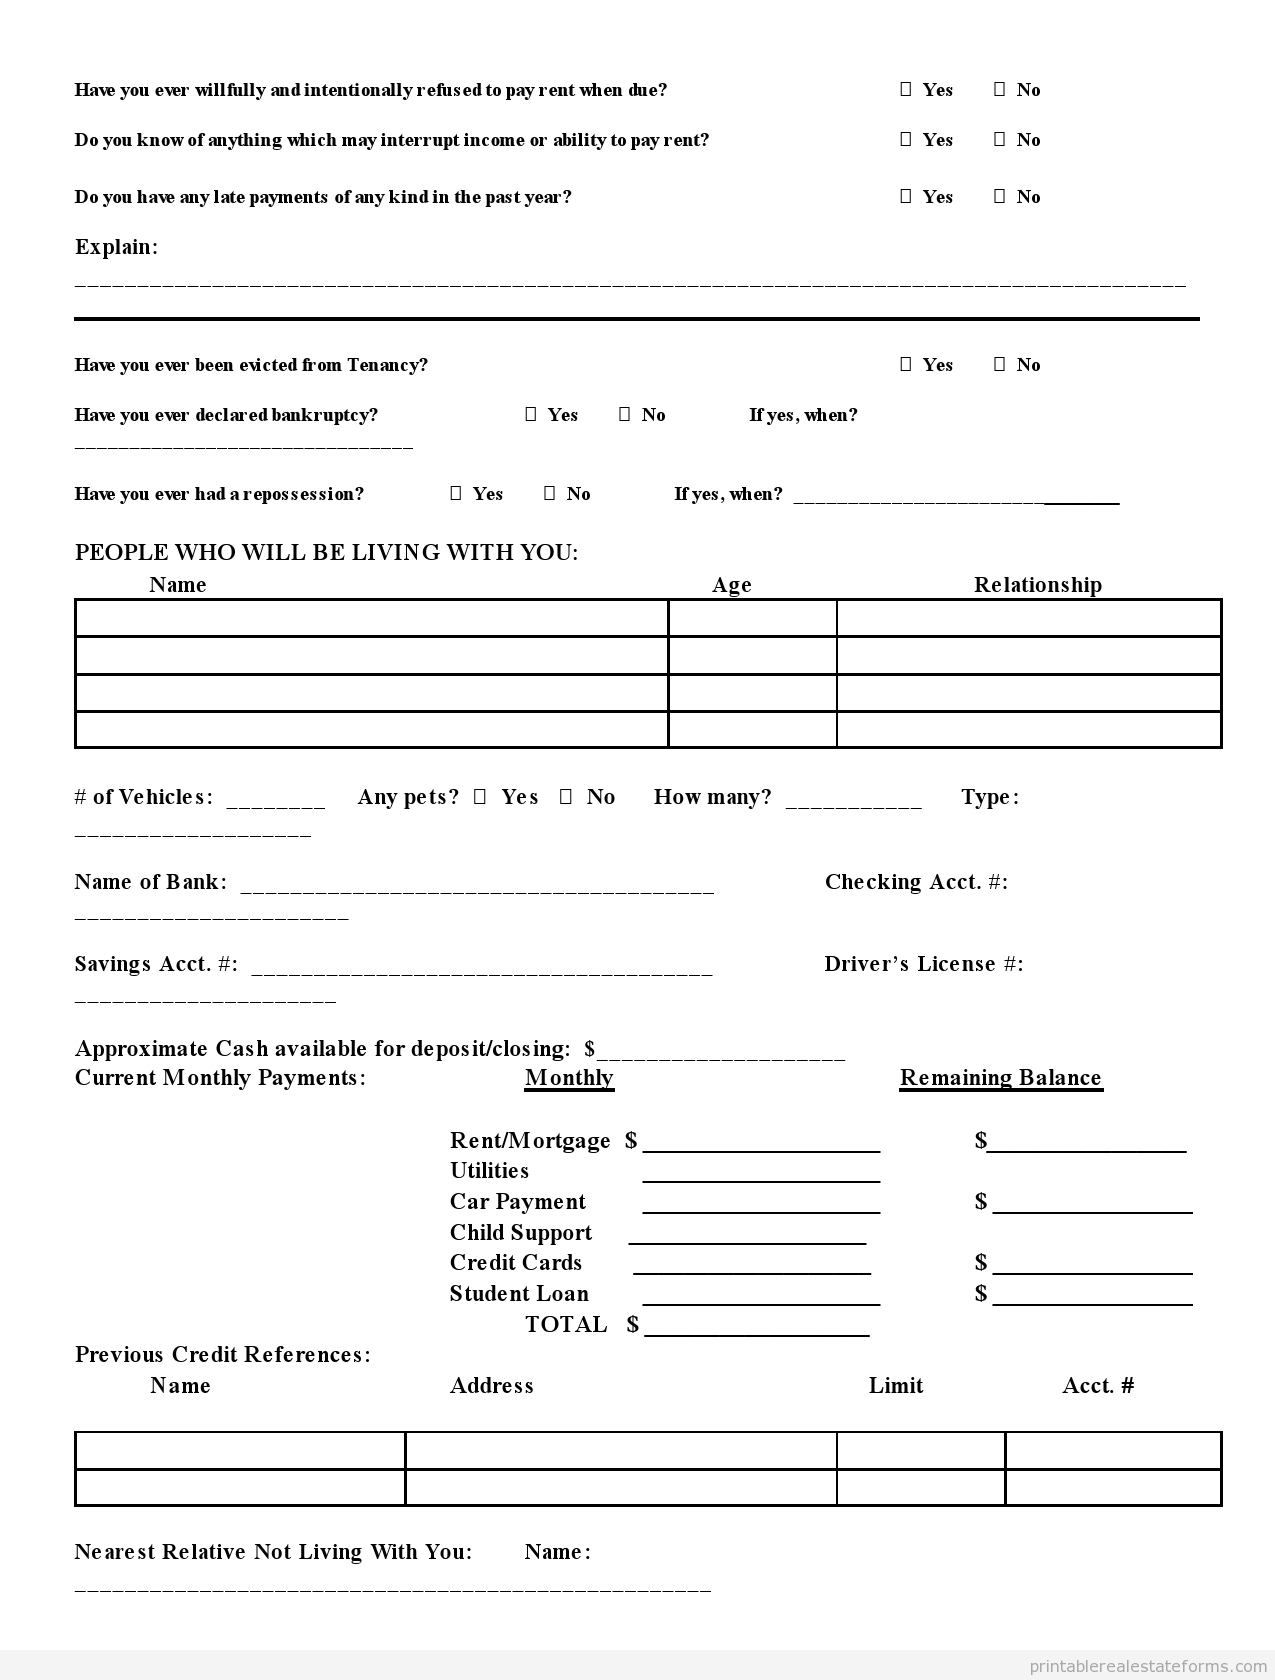 Printable Preliminary Credit Application Template